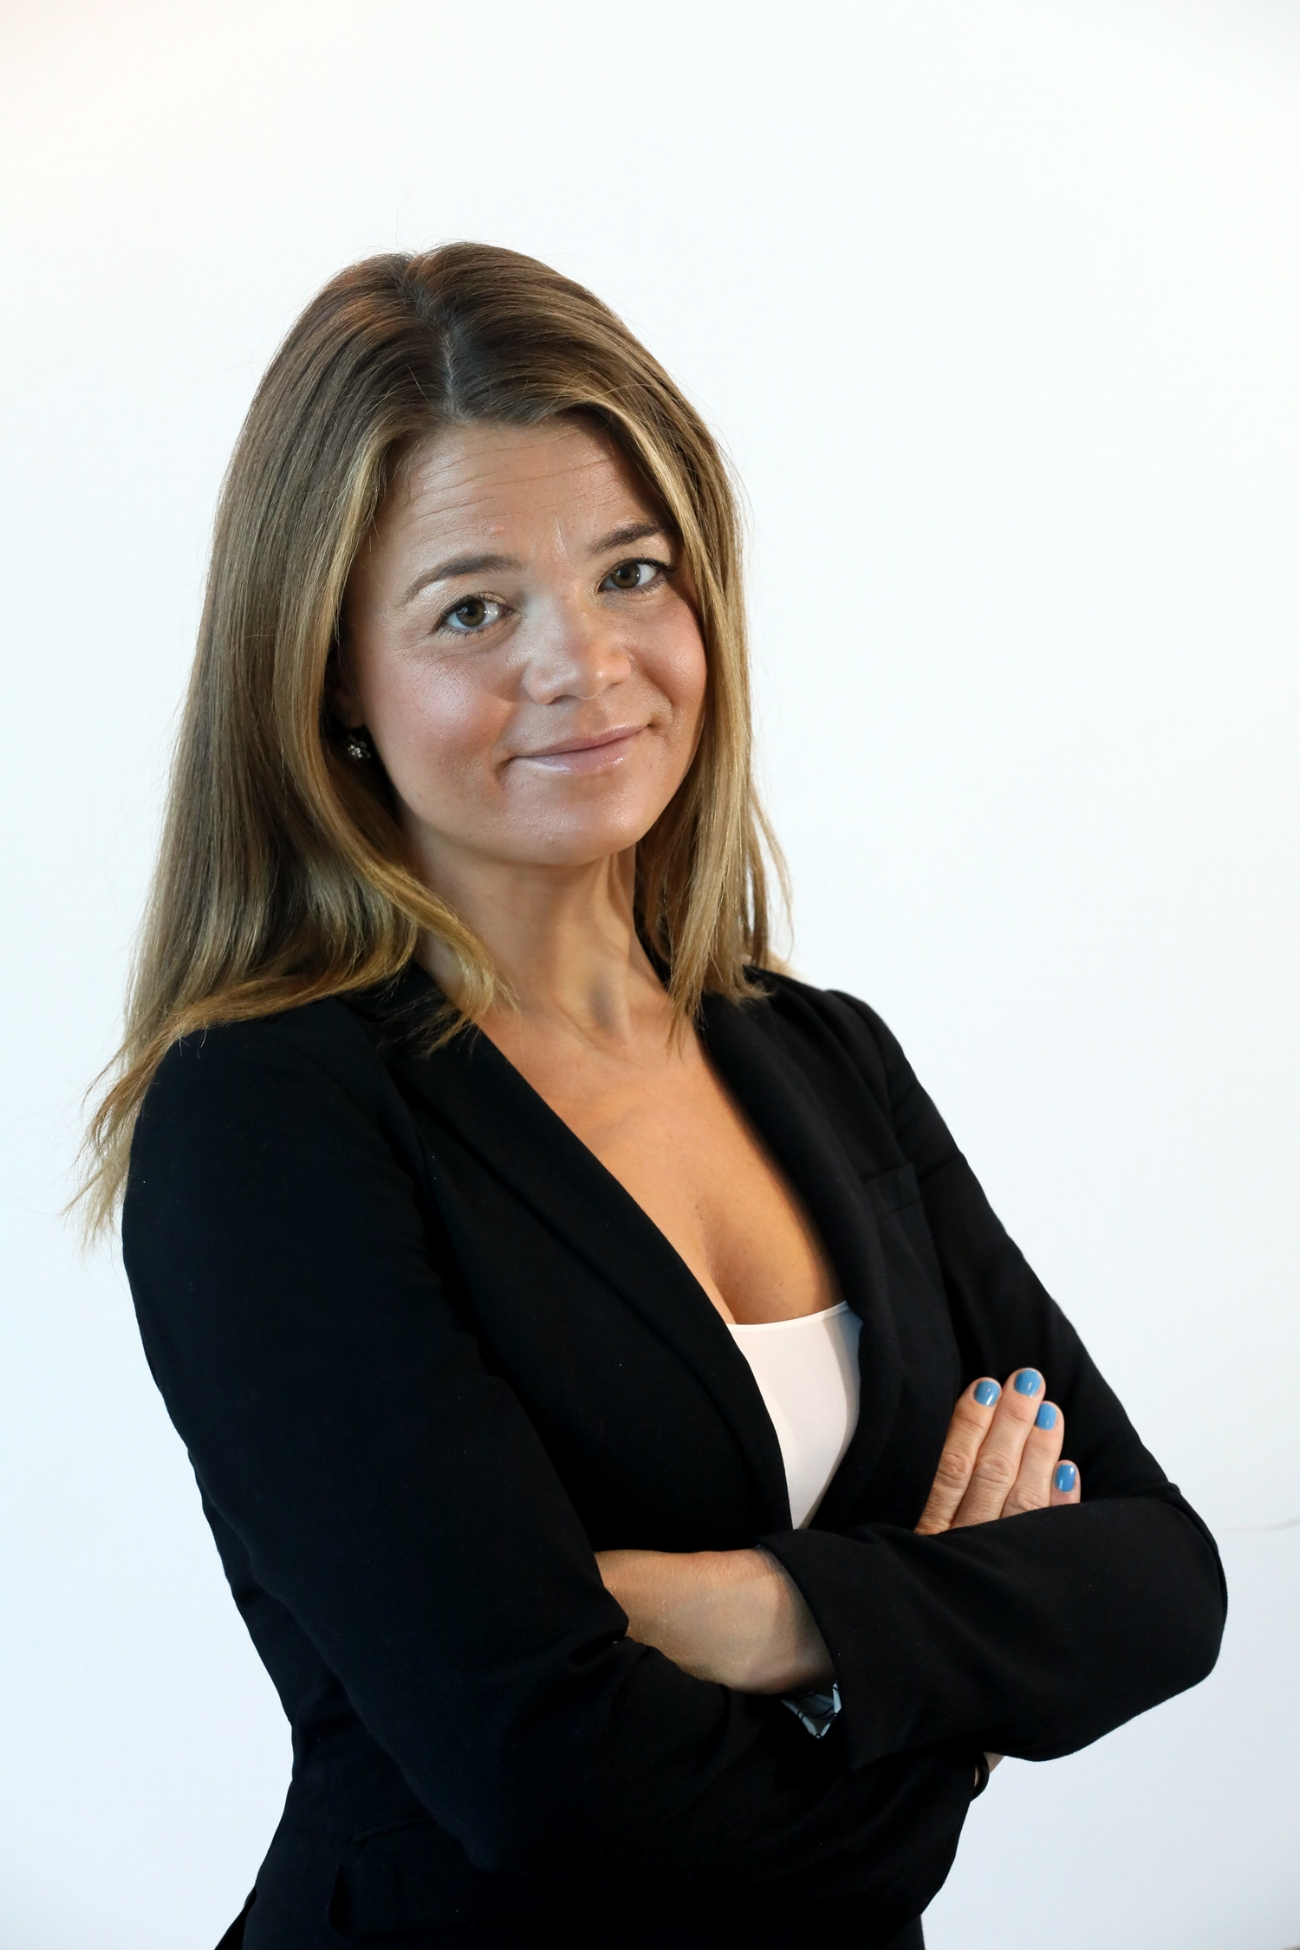 Julia Randow, Regional Director Sales and Supply for APAC and GCC